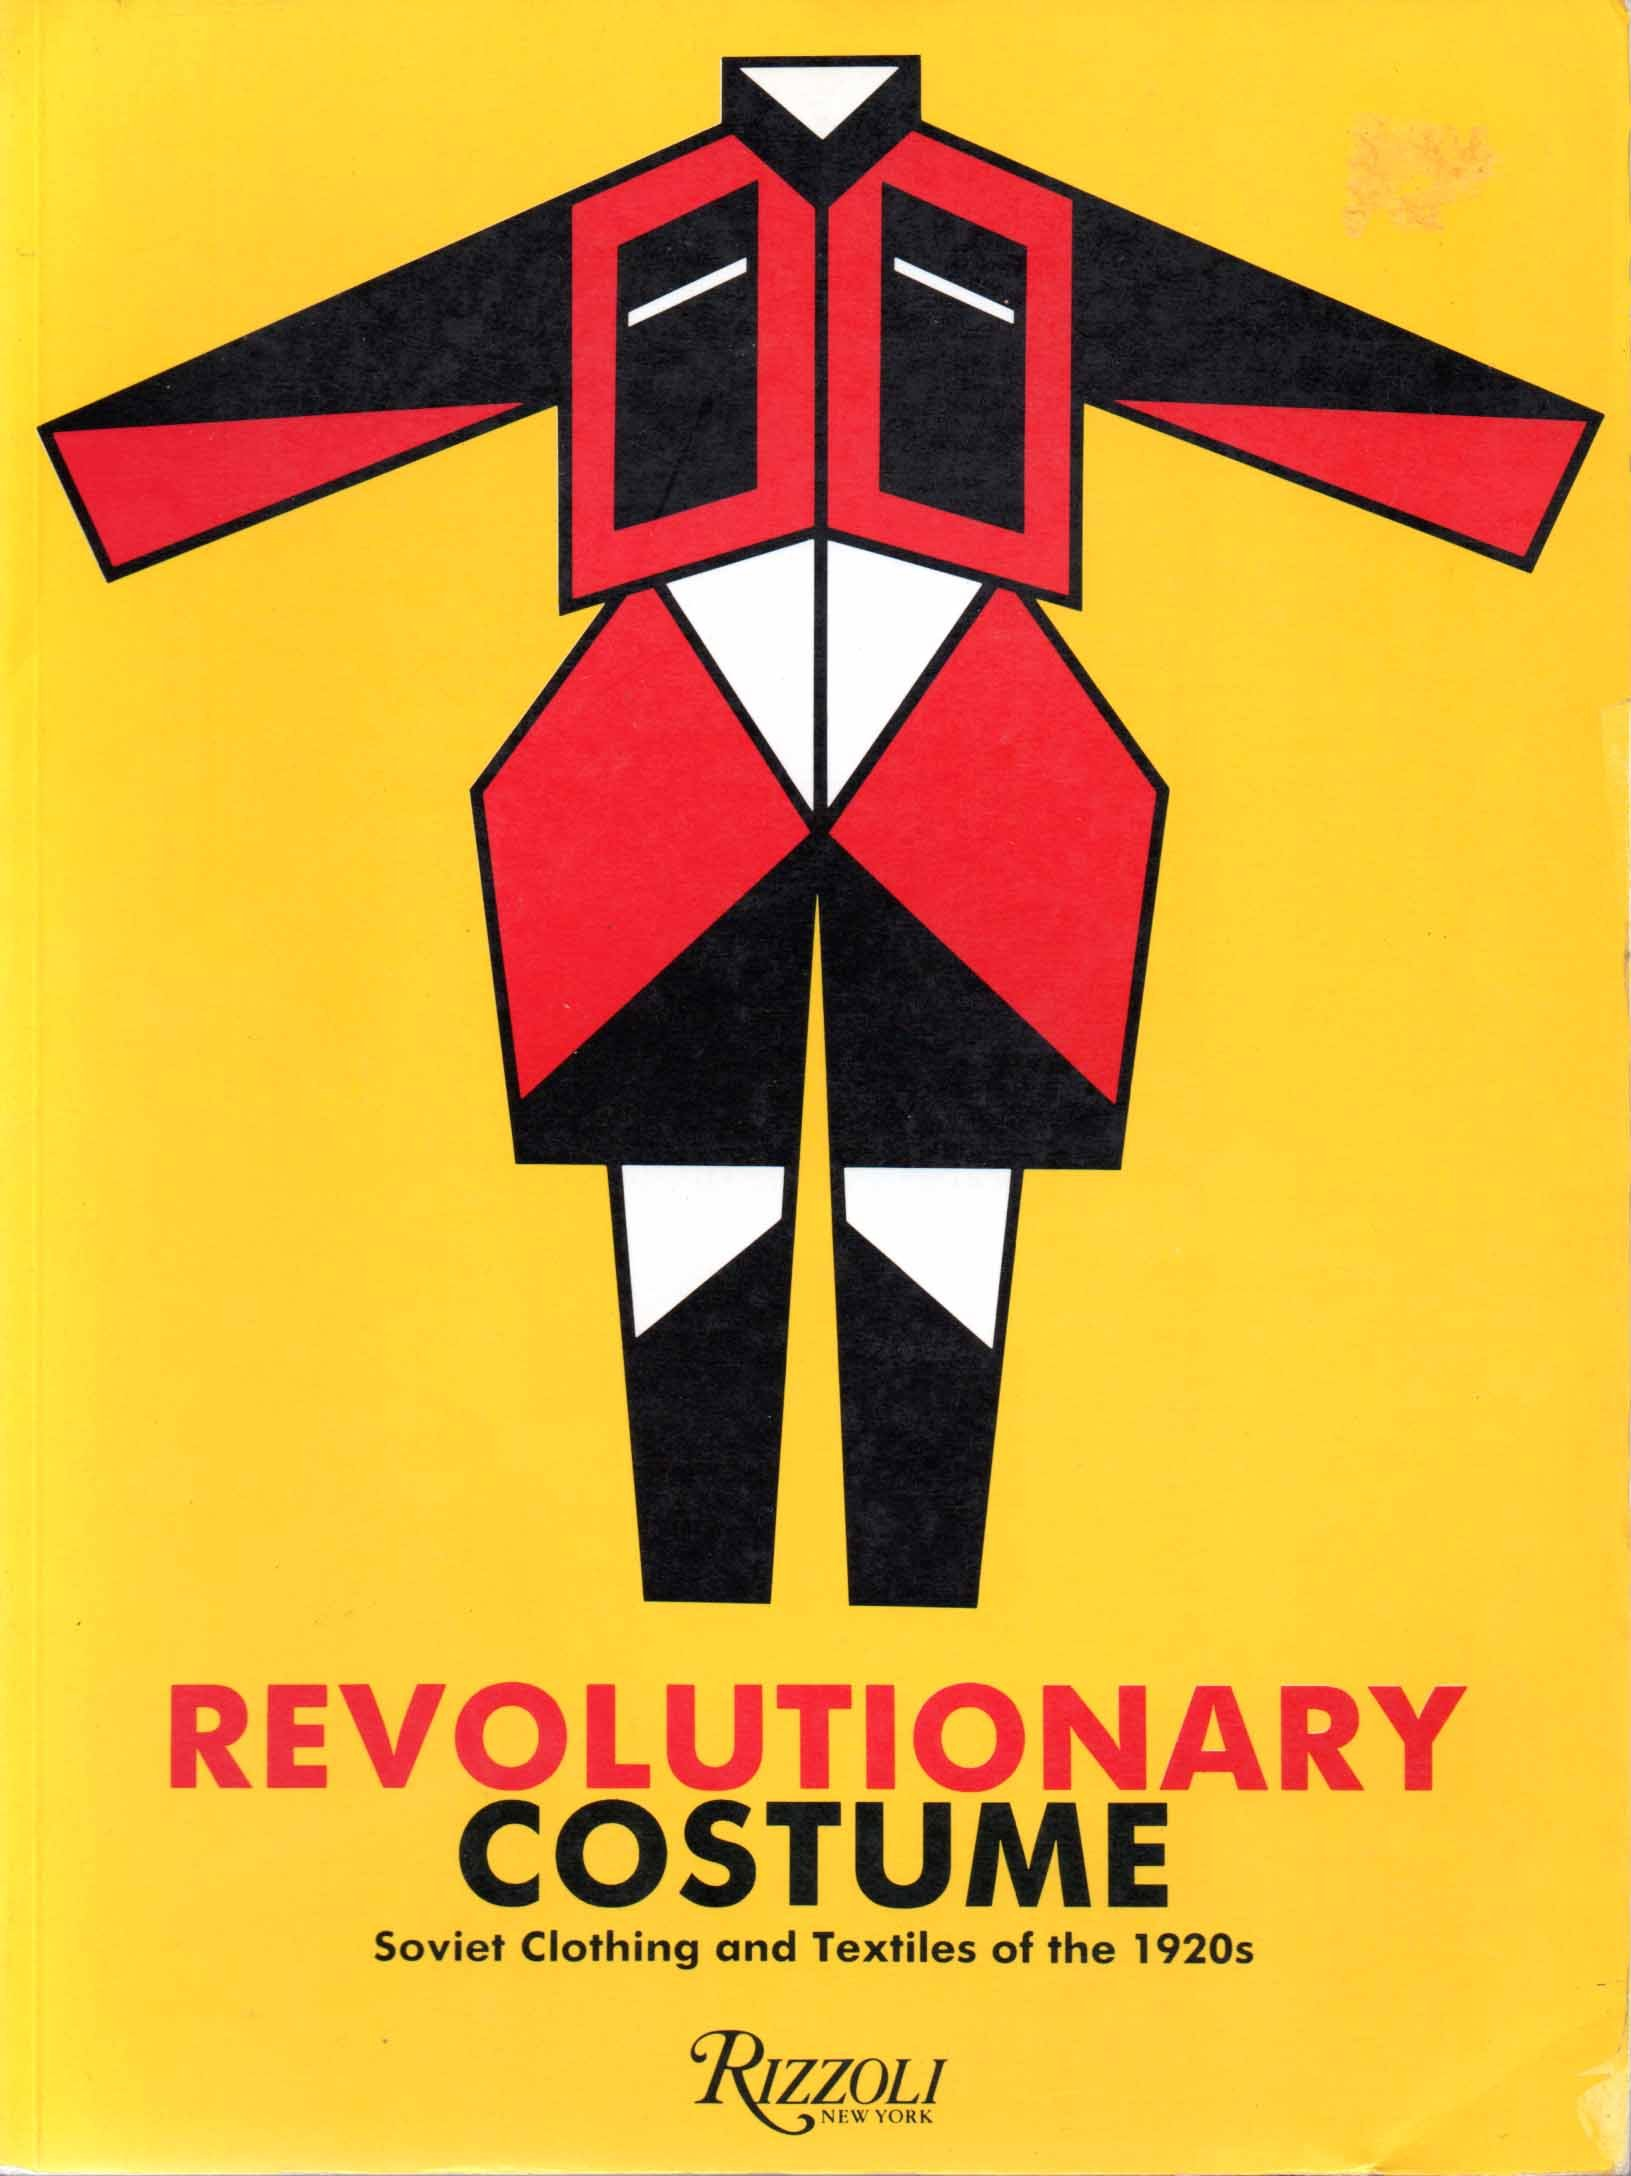 Revolutionary Costume: Soviet Clothing and Textiles of the 1920's